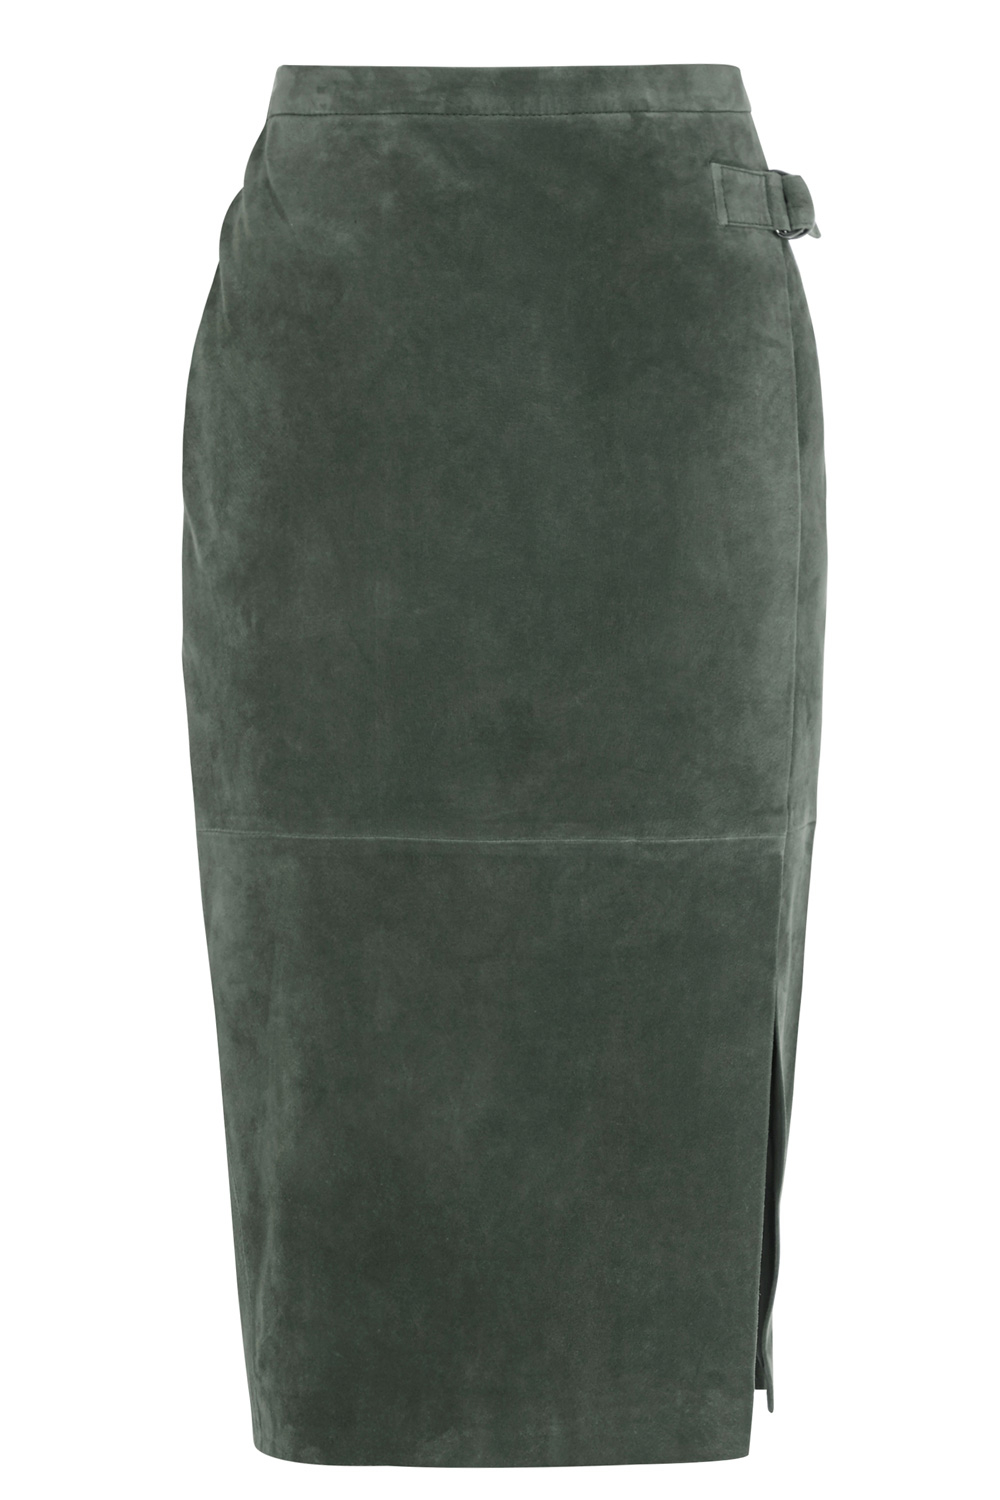 Oasis Suede Wrap Pencil Skirt in Green | Lyst